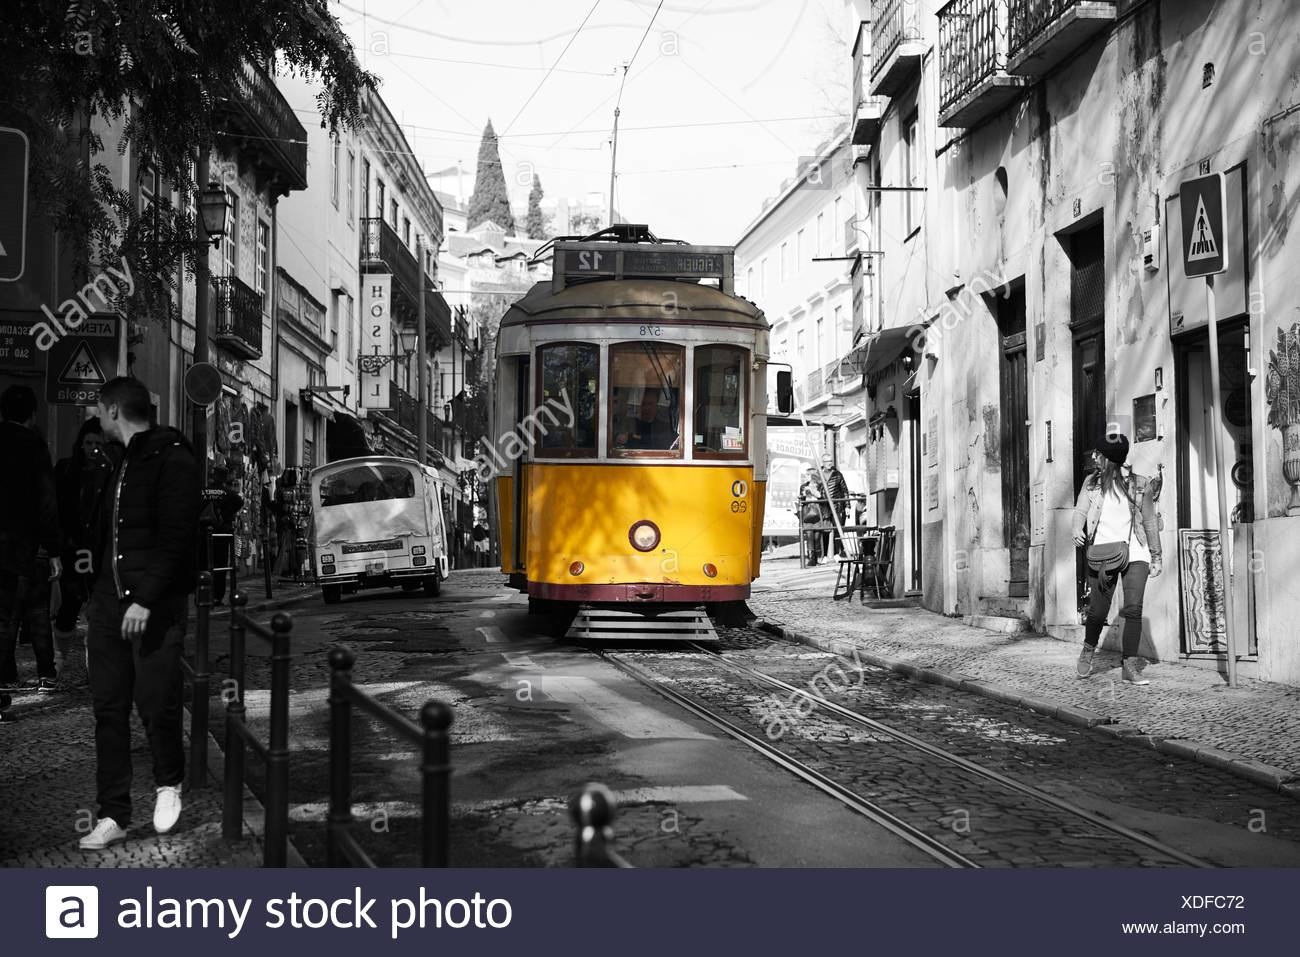 Photograph in black and white mixed with colour of Yellow Tram in Lisbon, Portugal, Europe - Stock Image